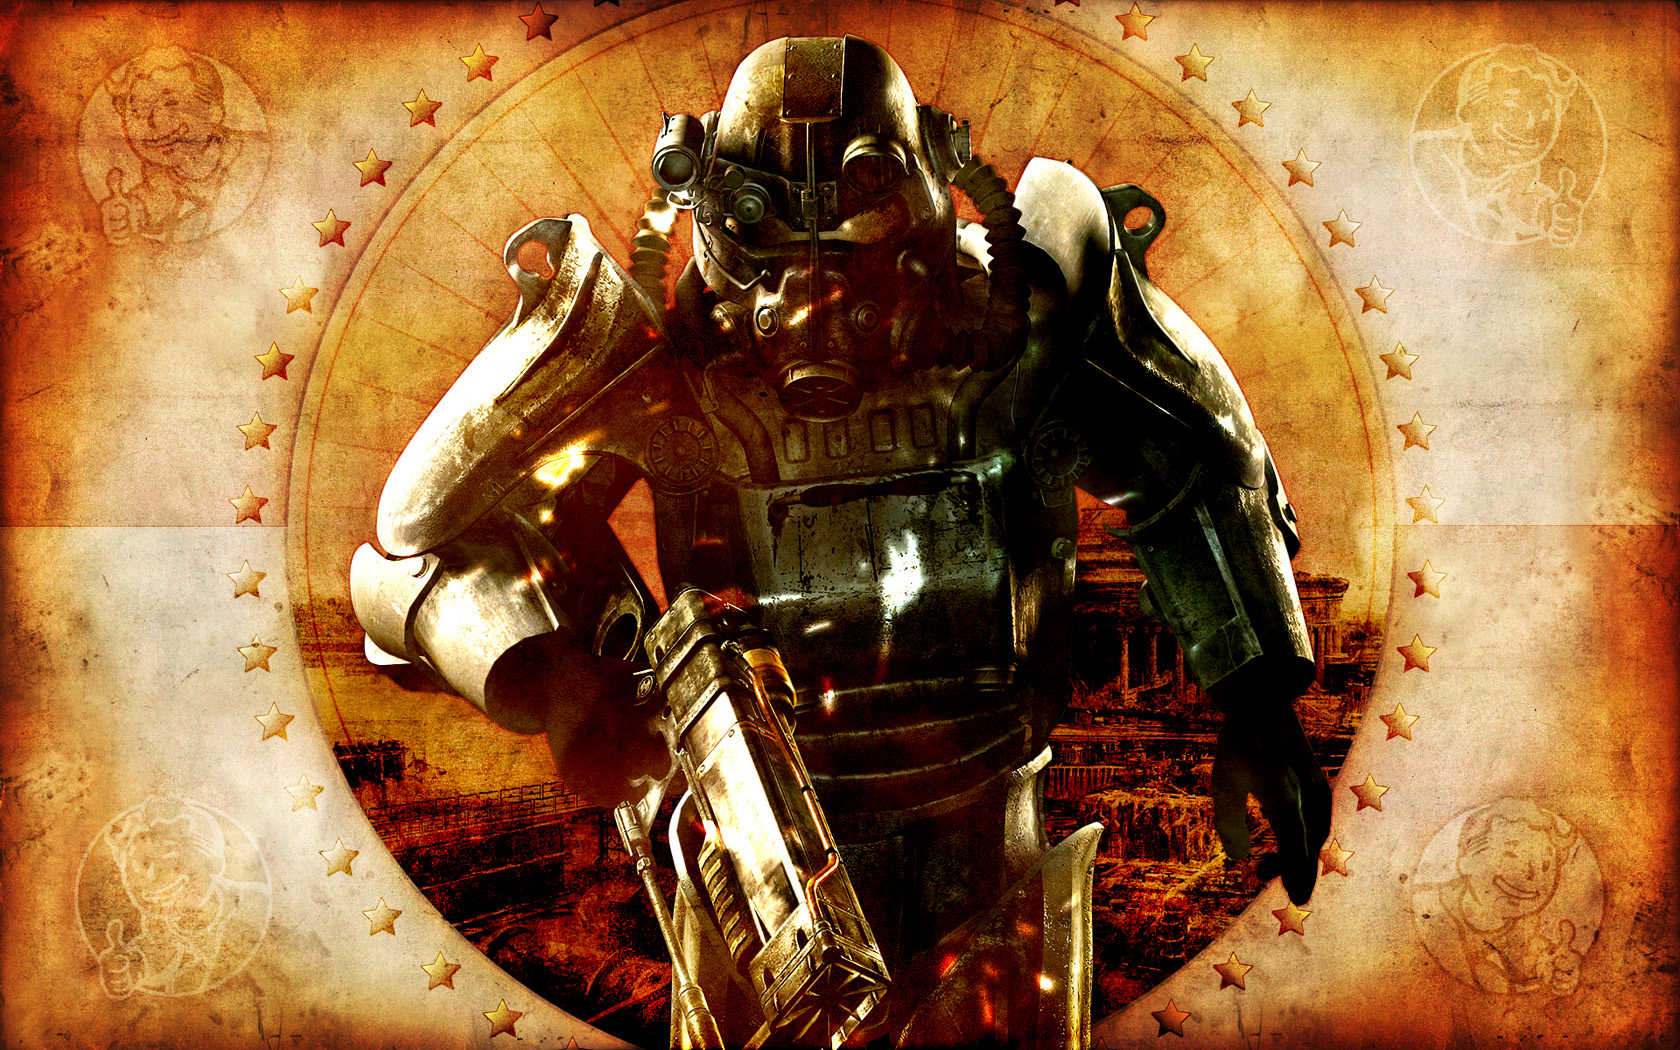 Fallout New Vegas Hd Desktop Wallpaper Widescreen High 1680x1050